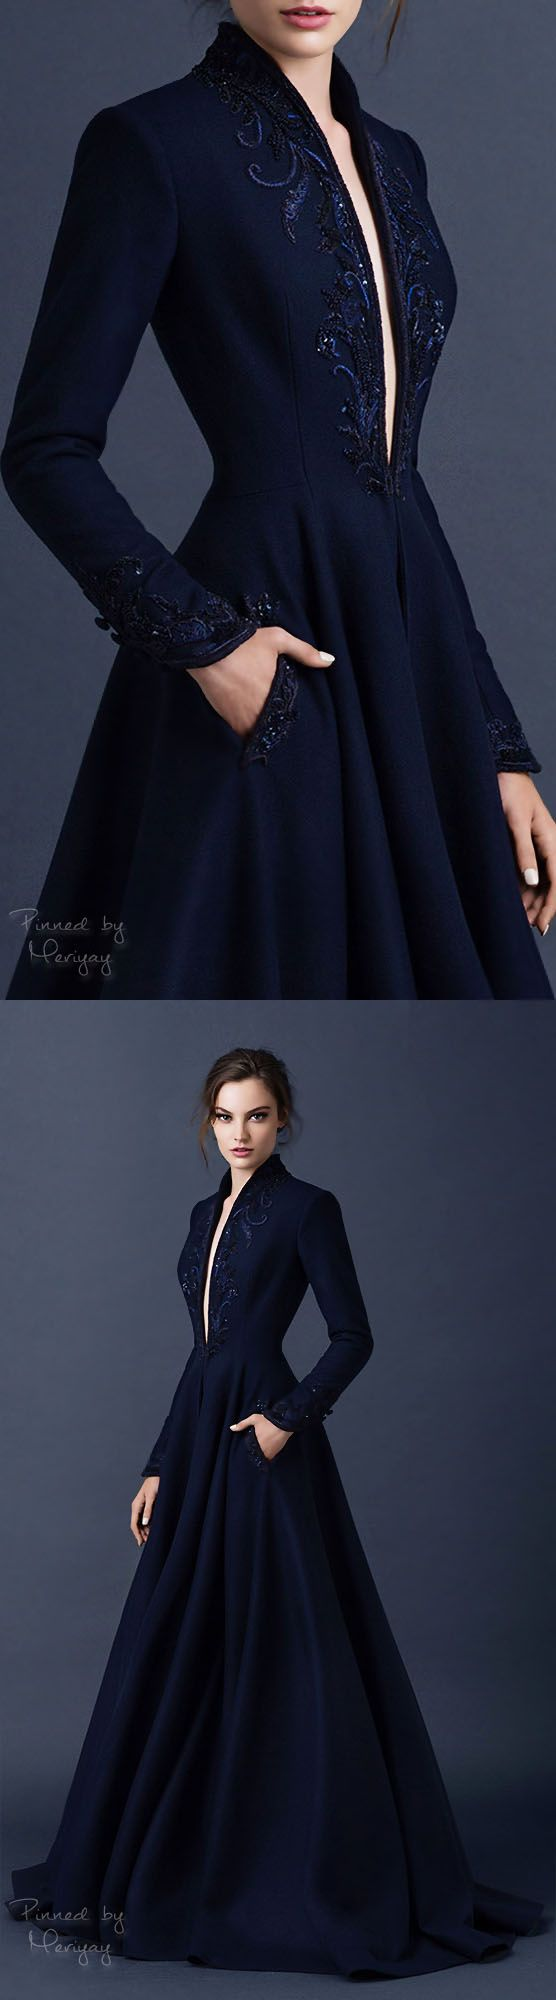 Idis couture robes pinterest paolo sebastian navy blue and